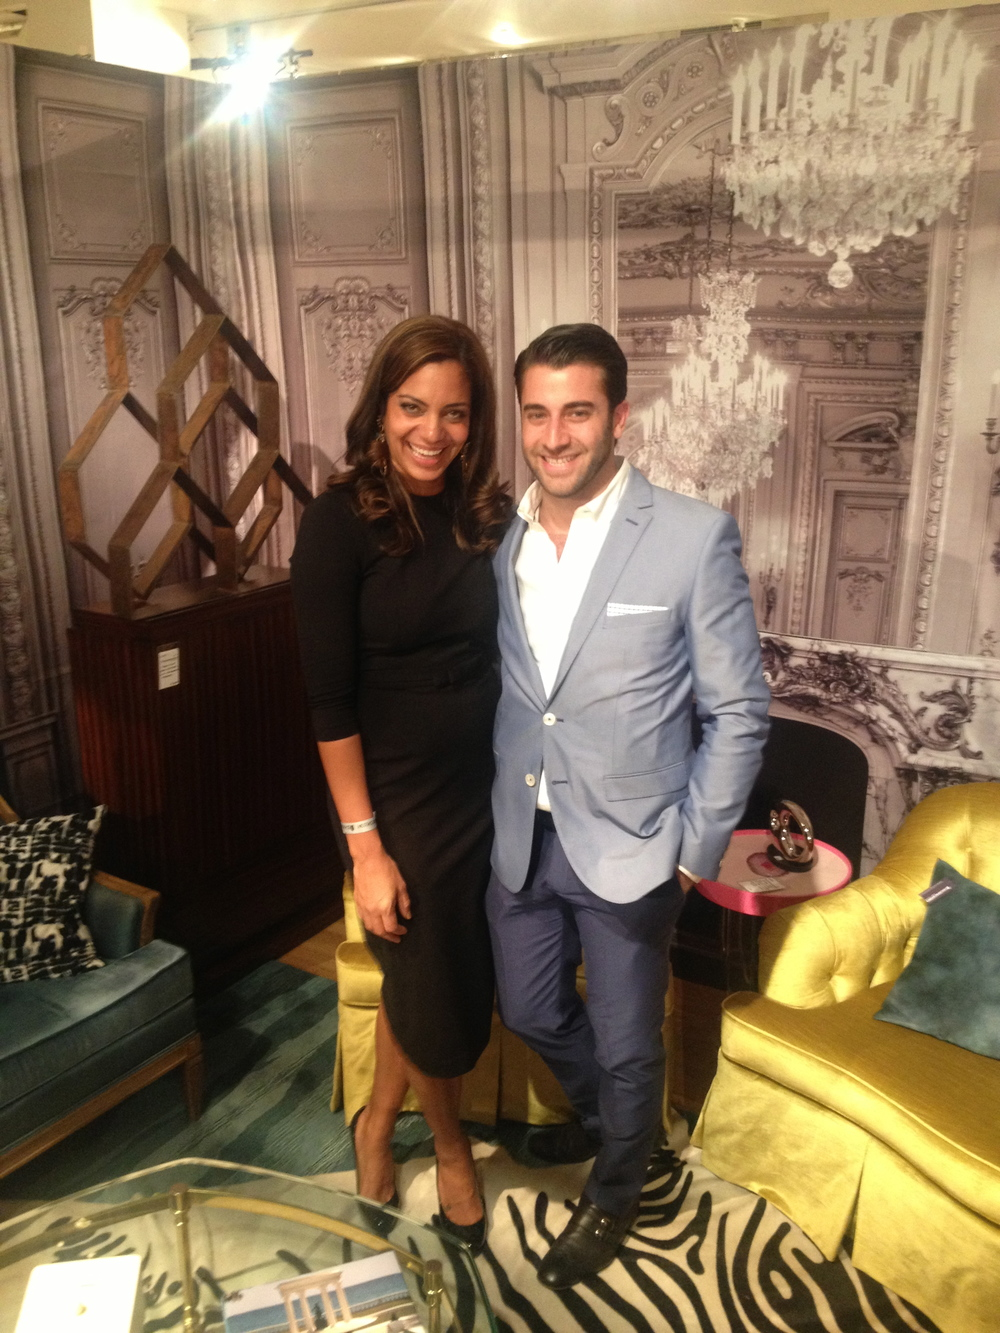 Antonino Buzzetta aka Mr Chic. His room was to DIE for! When can I move in?